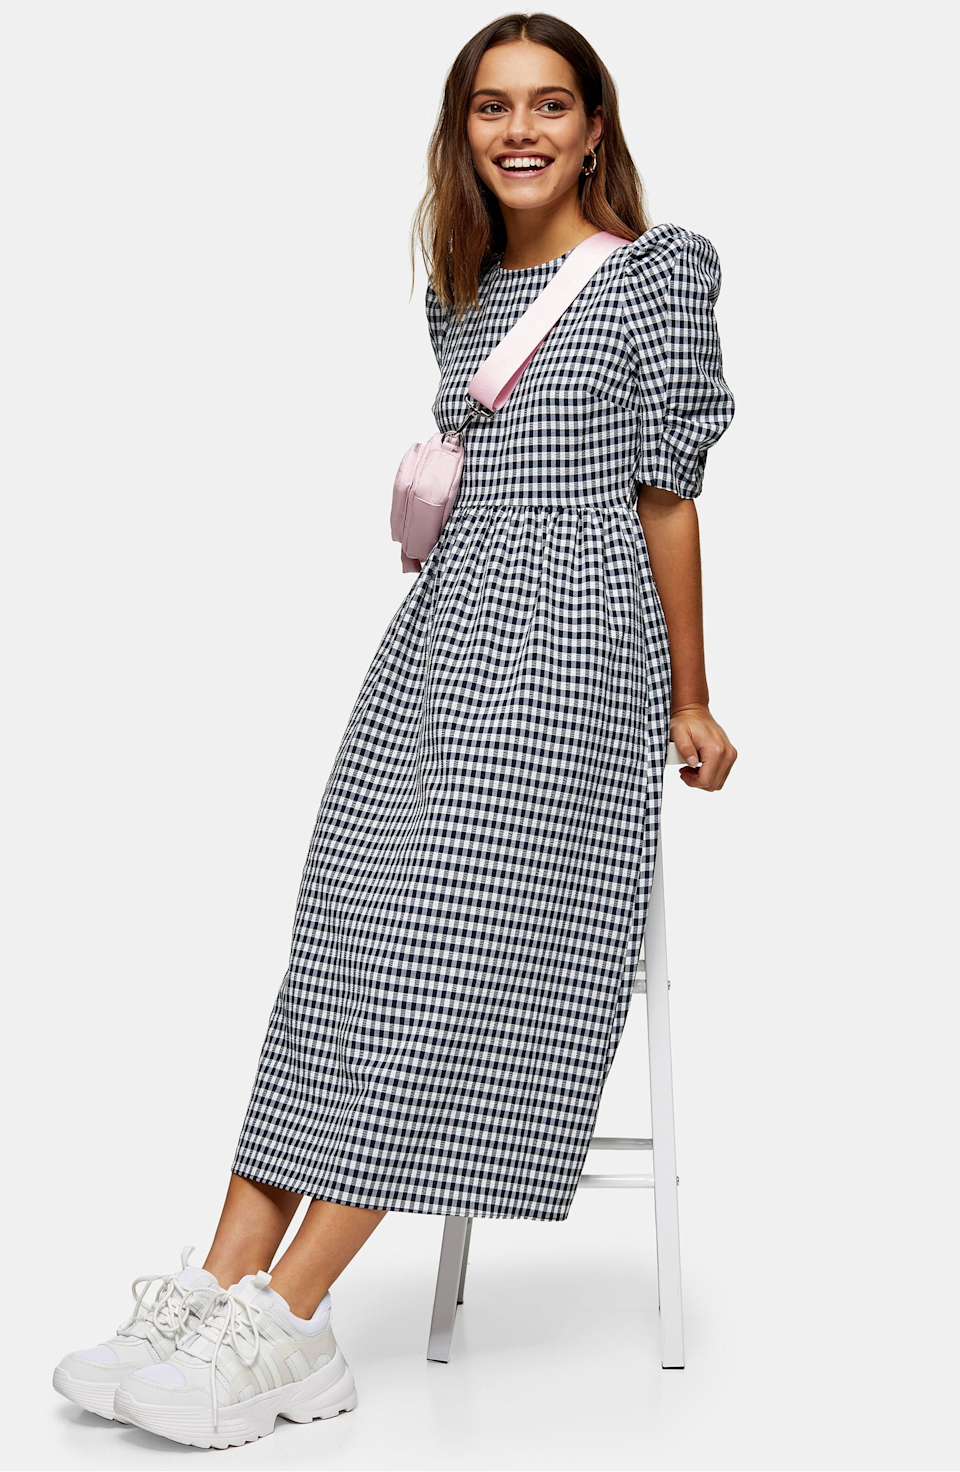 "Topshop is offering up to <a href=""https://us.topshop.com/en/tsus/category/sale-6923951/up-to-40-off-selected-lines-9508100?"" rel=""nofollow noopener"" target=""_blank"" data-ylk=""slk:30% off new summer deliveries"" class=""link rapid-noclick-resp"">30% off new summer deliveries</a>. <br> <br> <strong>Topshop</strong> Gingham Cross Back Smock Midi Dress, $, available at <a href=""https://go.skimresources.com/?id=30283X879131&url=https%3A%2F%2Fus.topshop.com%2Fen%2Ftsus%2Fproduct%2Fblack-and-white-gingham-cross-back-smock-midi-dress-9756825"" rel=""nofollow noopener"" target=""_blank"" data-ylk=""slk:Topshop"" class=""link rapid-noclick-resp"">Topshop</a>"